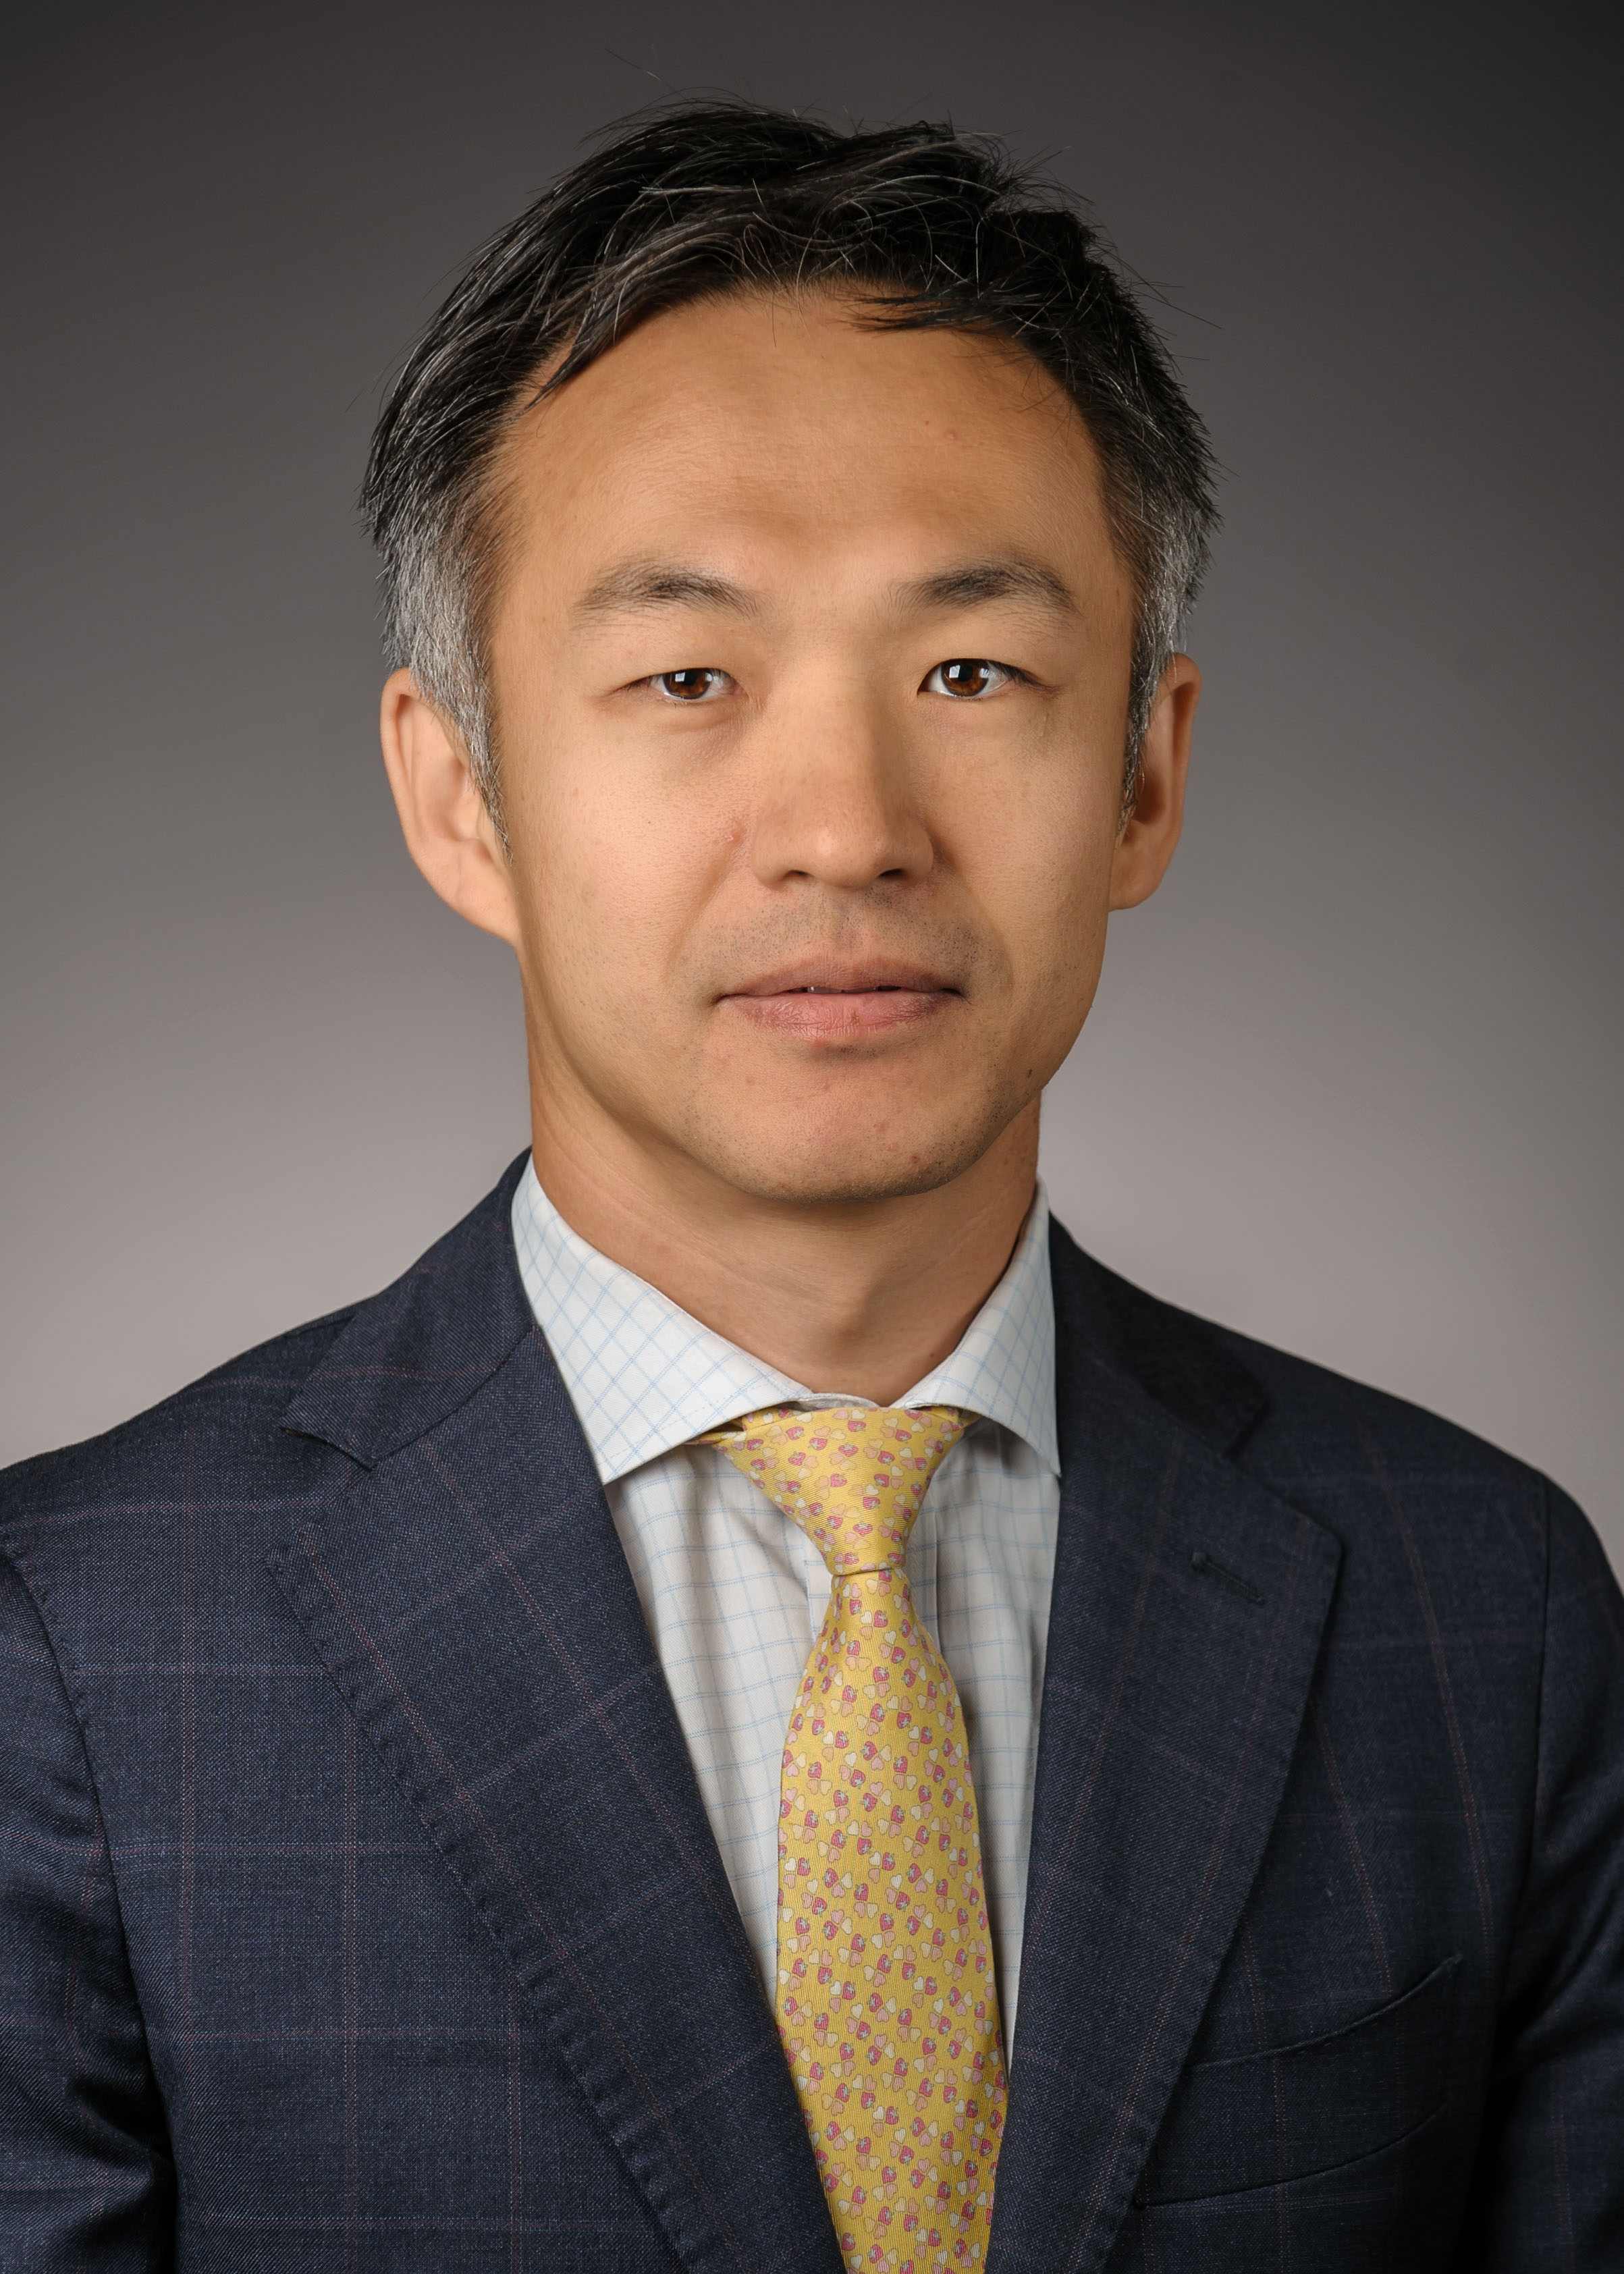 Jung-Il Bang |Project Manager - Jung-Il Bang is a 2003 graduate of the Seoul National University in South Korea. After earning his BS in Mechanical and Aerospace Engineering, he has worked on the Global Business Development Team at Samsung Electronics, followed by Corporate & Investment Banking teams at Deutsche Bank and Barclays Bank.Working with various corporate clients in energy industries such as power utility and oil & gas companies, he became interested in energy and environment. While advising a Korean firm on the acquisition of a California wind farm in 2015, Jung-Il discovered in himself a strong desire to deepen his understanding of energy and environmental economics and to develop corporate solutions of sustainable growth and decided to return to academia.As a Masters candidate (2017-19) specializing in Corporate Environmental Management, Jung-Il's interests are centered on analyzing the role of the financial industry on energy and environment, and optimizing the life-cycle cost-benefit of sustainable development in the private sector. Overall, it is Jung-Il's mission at the Bren School of Environmental Science & Management to obtain the skills necessary to create sustainable growth solutions for corporate clients that simultaneously elevate shareholder values and environmental responsibilities.